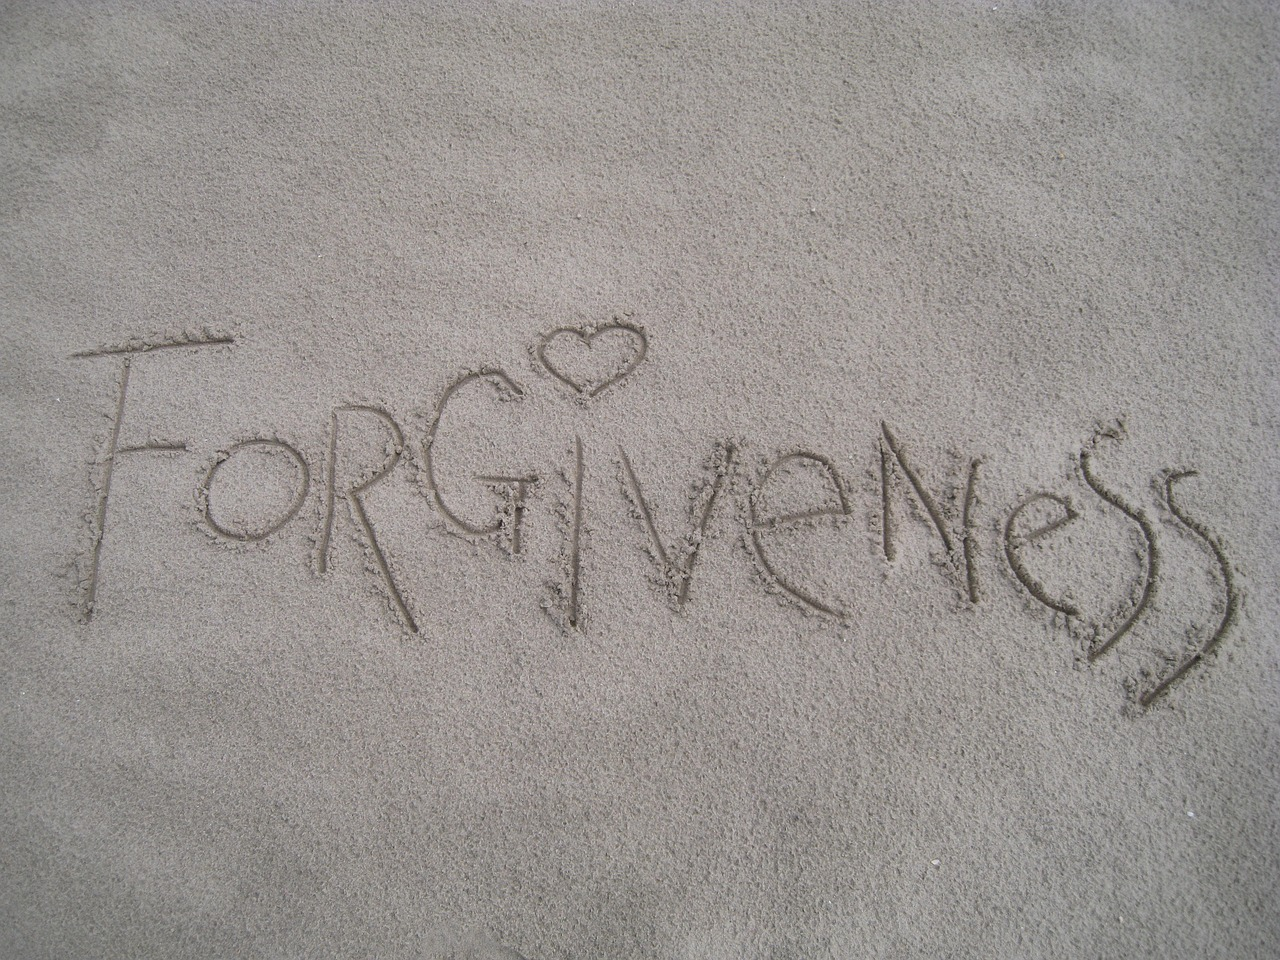 tears-broken-soul-forgive